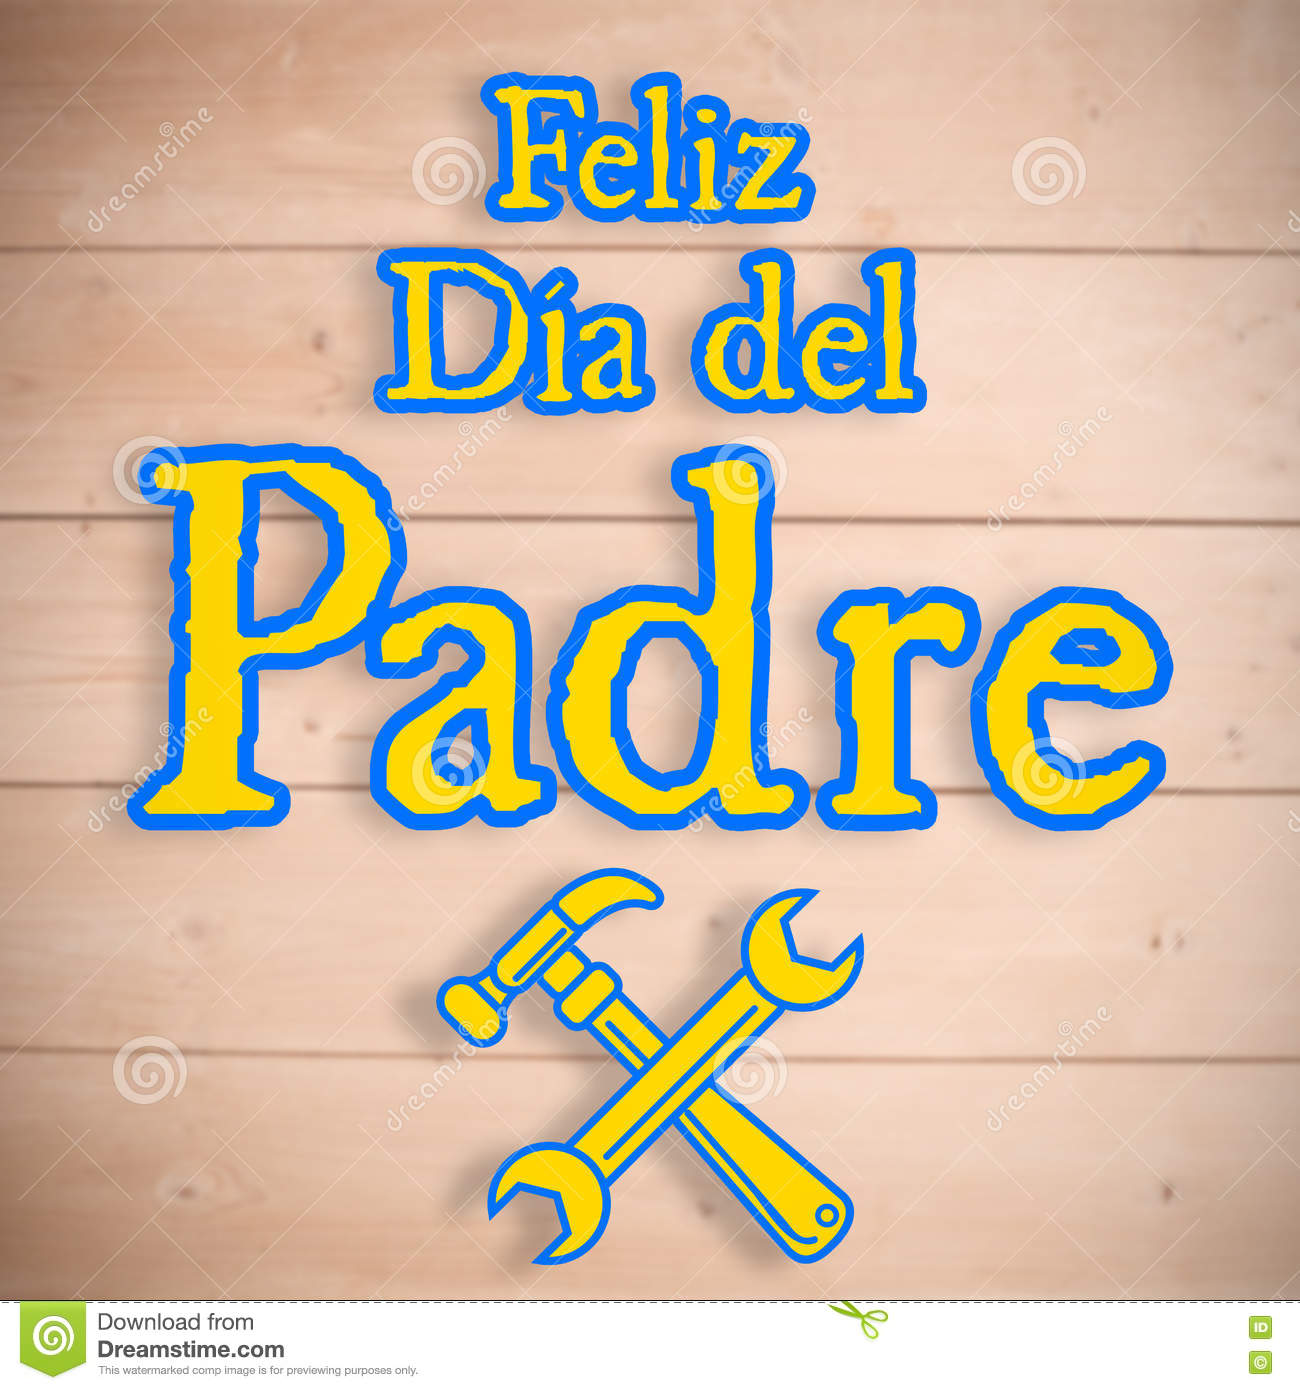 feliz dia del padre happy fathers day written in spanish. Black Bedroom Furniture Sets. Home Design Ideas